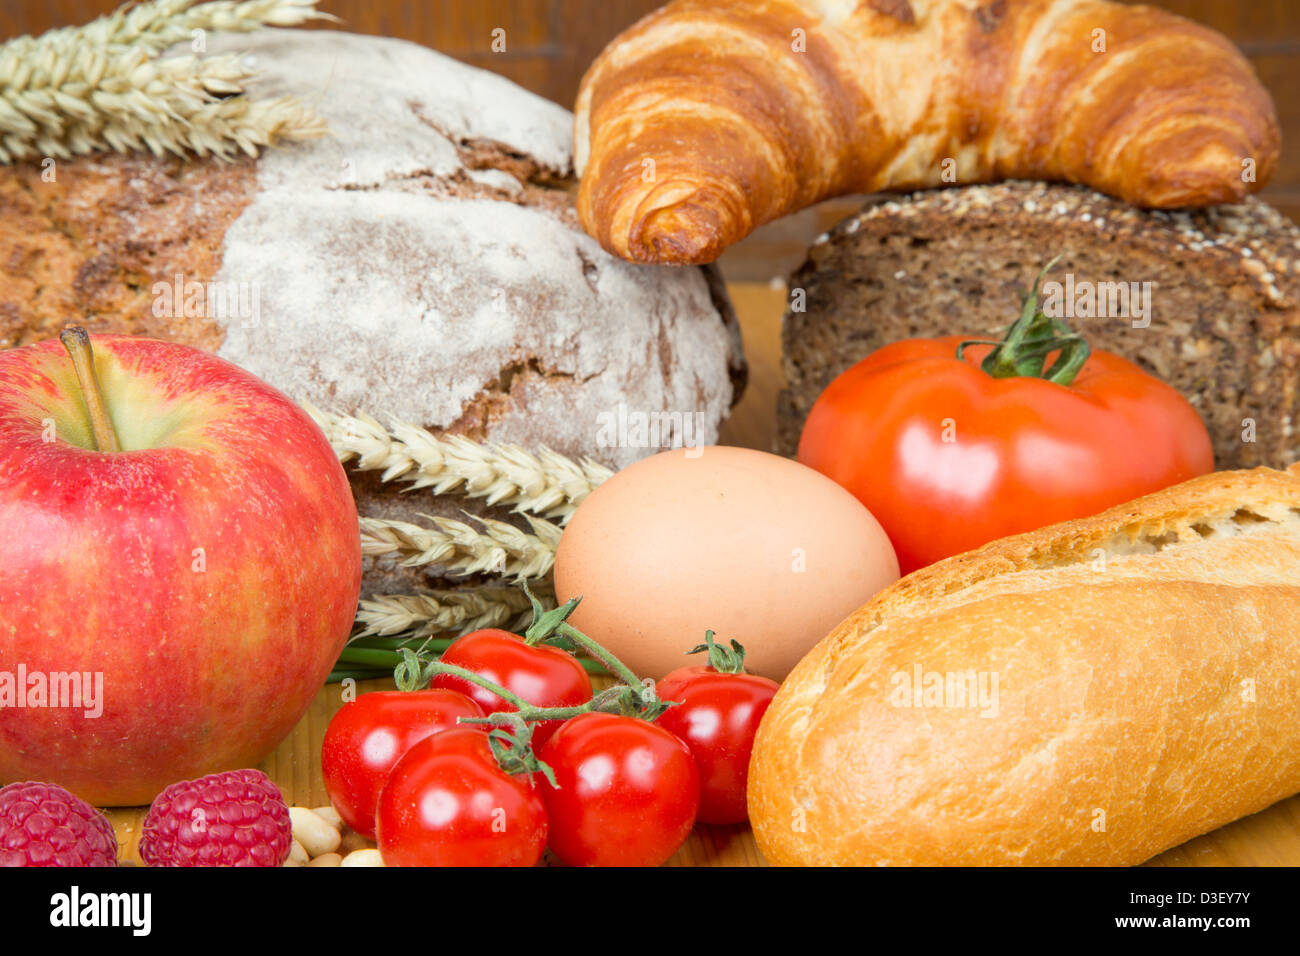 Different types of food such as bread, a tomato, apple, pine seeds, raspberry and a pretzel - Stock Image